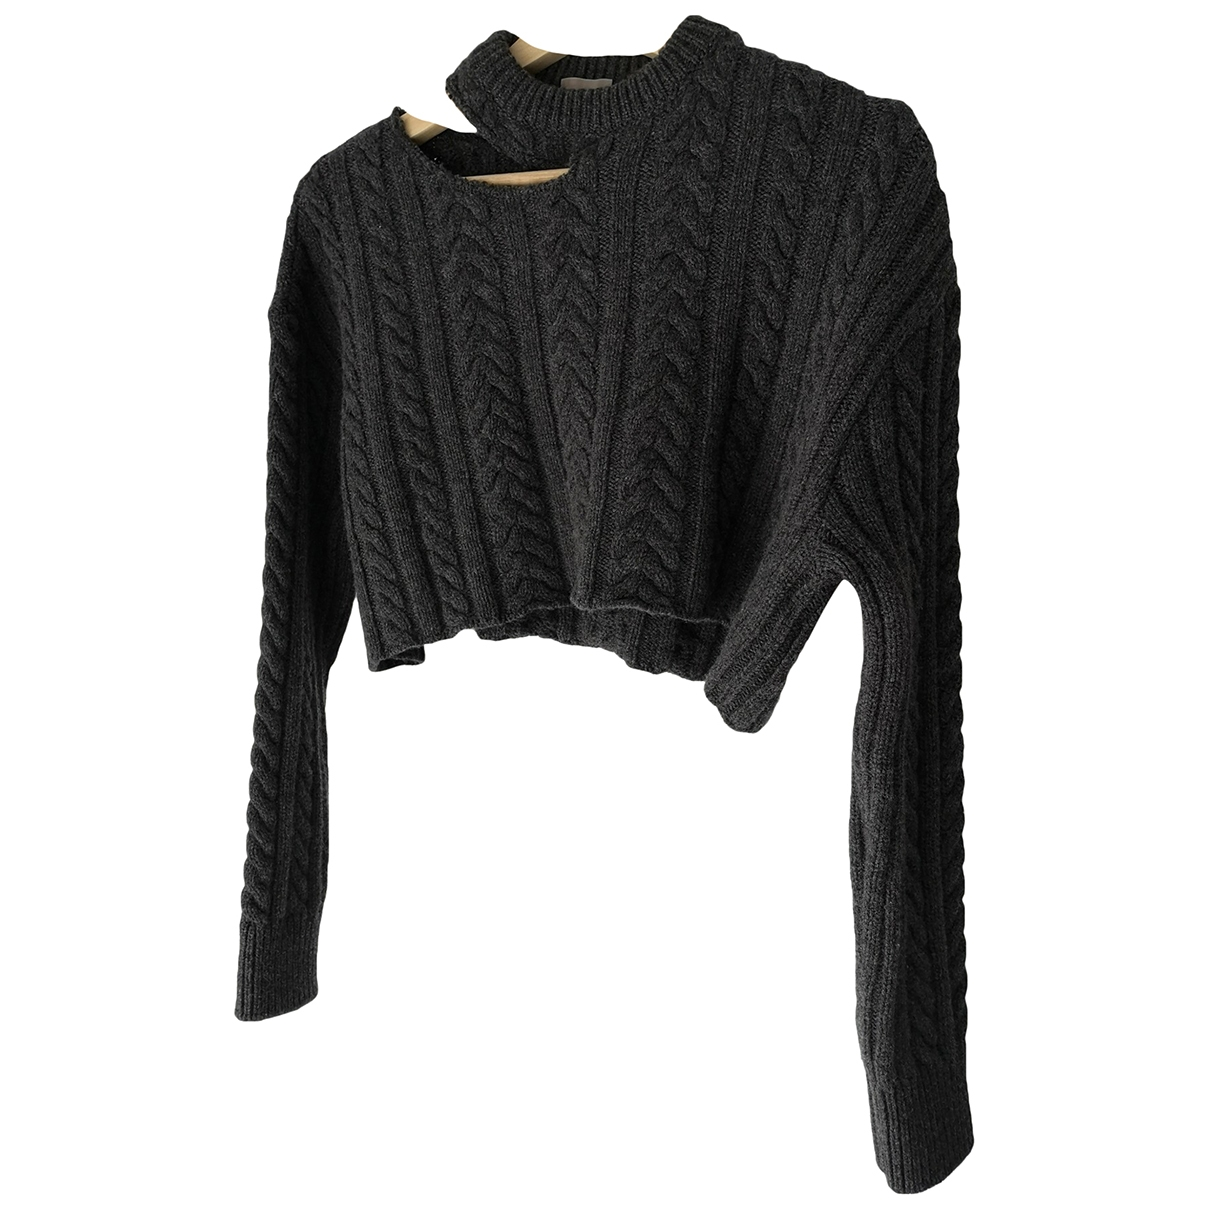 Mrz \N Grey Wool Knitwear for Women 36 FR